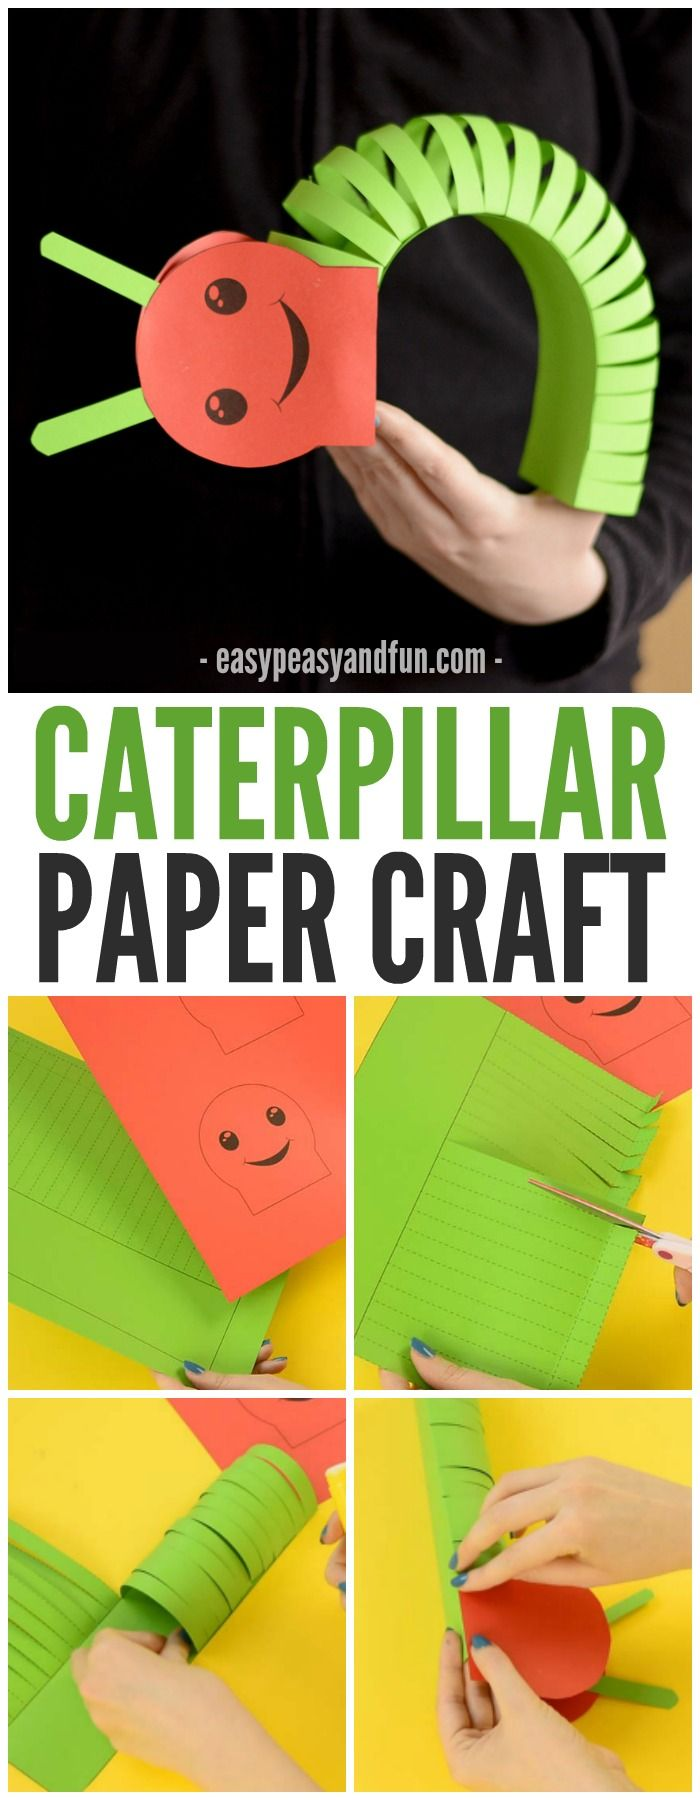 Cute Printable 3D Caterpillar Paper Craft for Kids